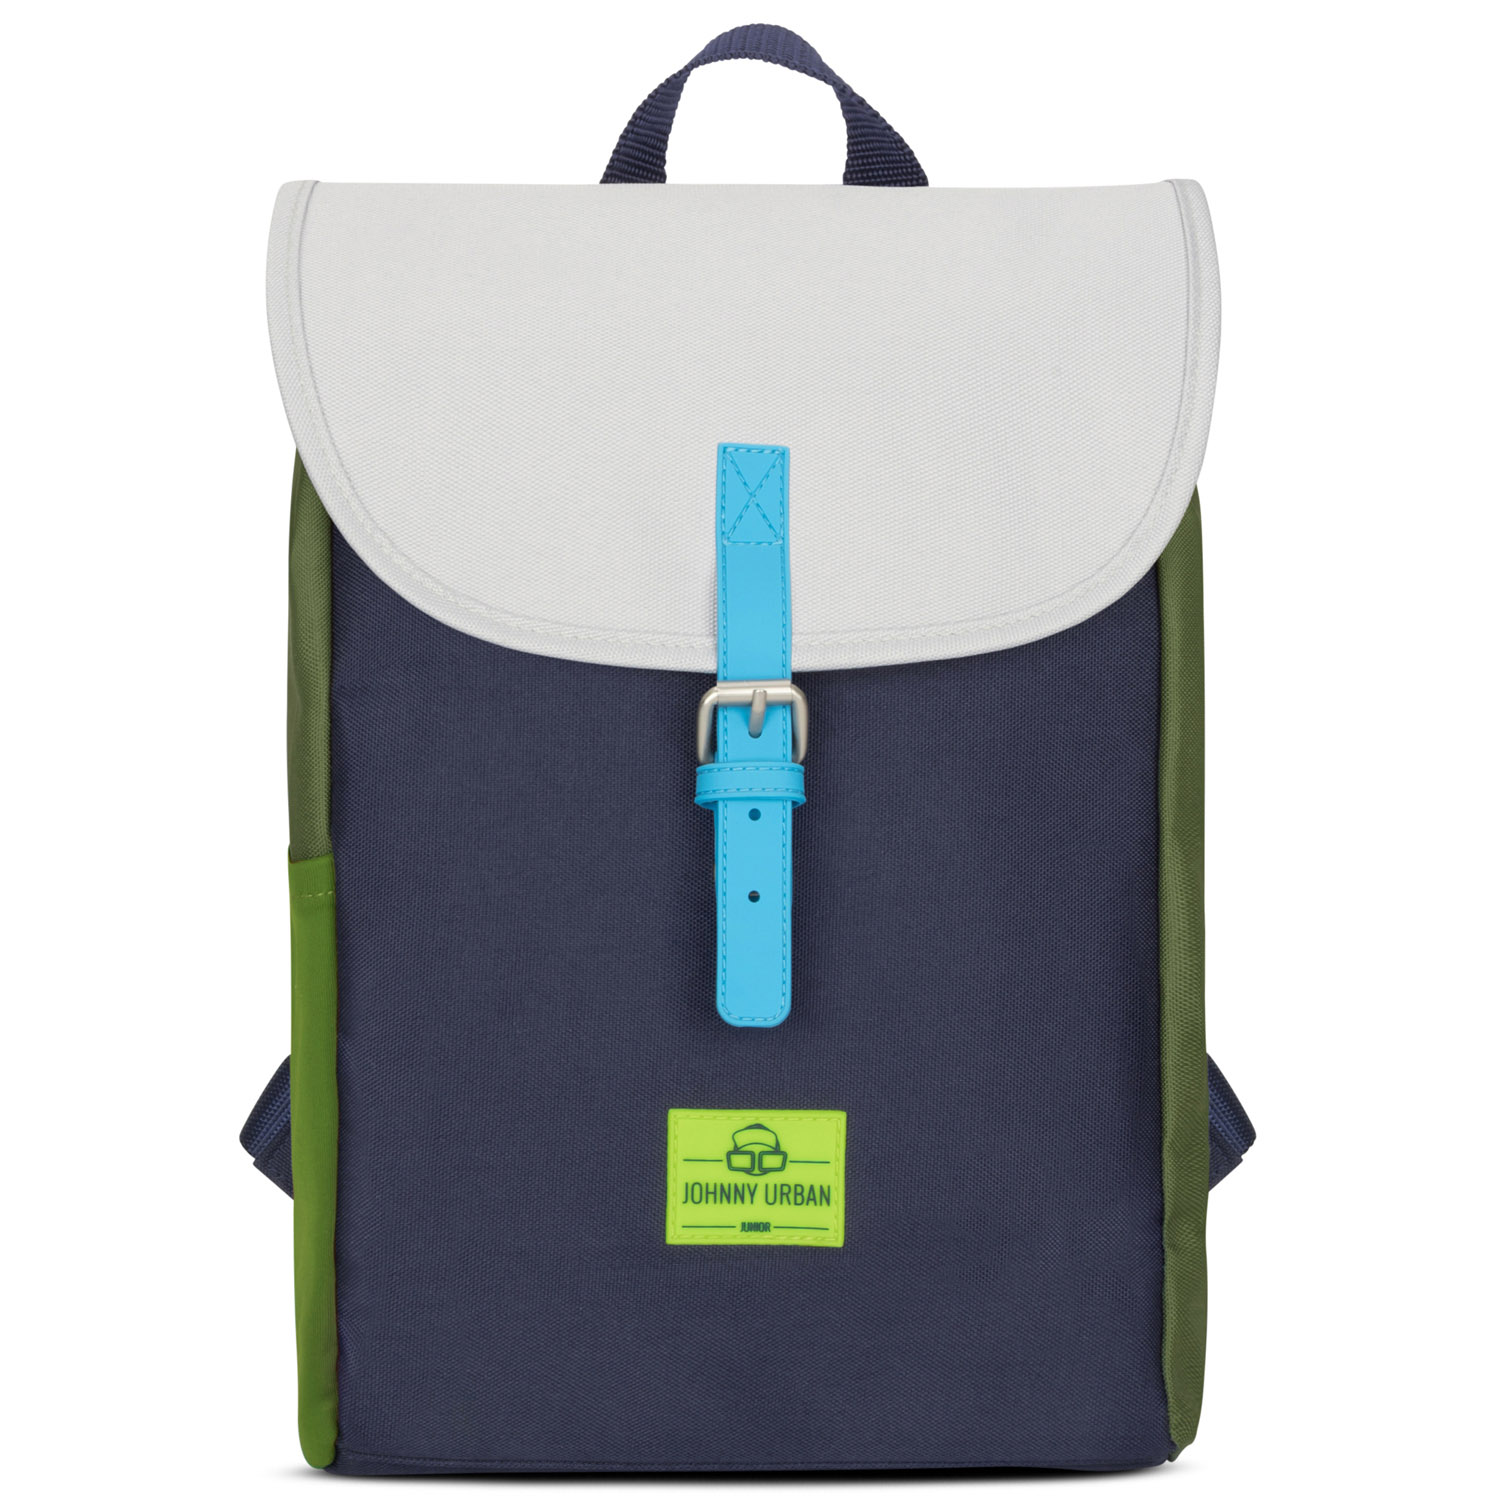 Kinderrucksack - Liam -  grün multi - Johnny Urban